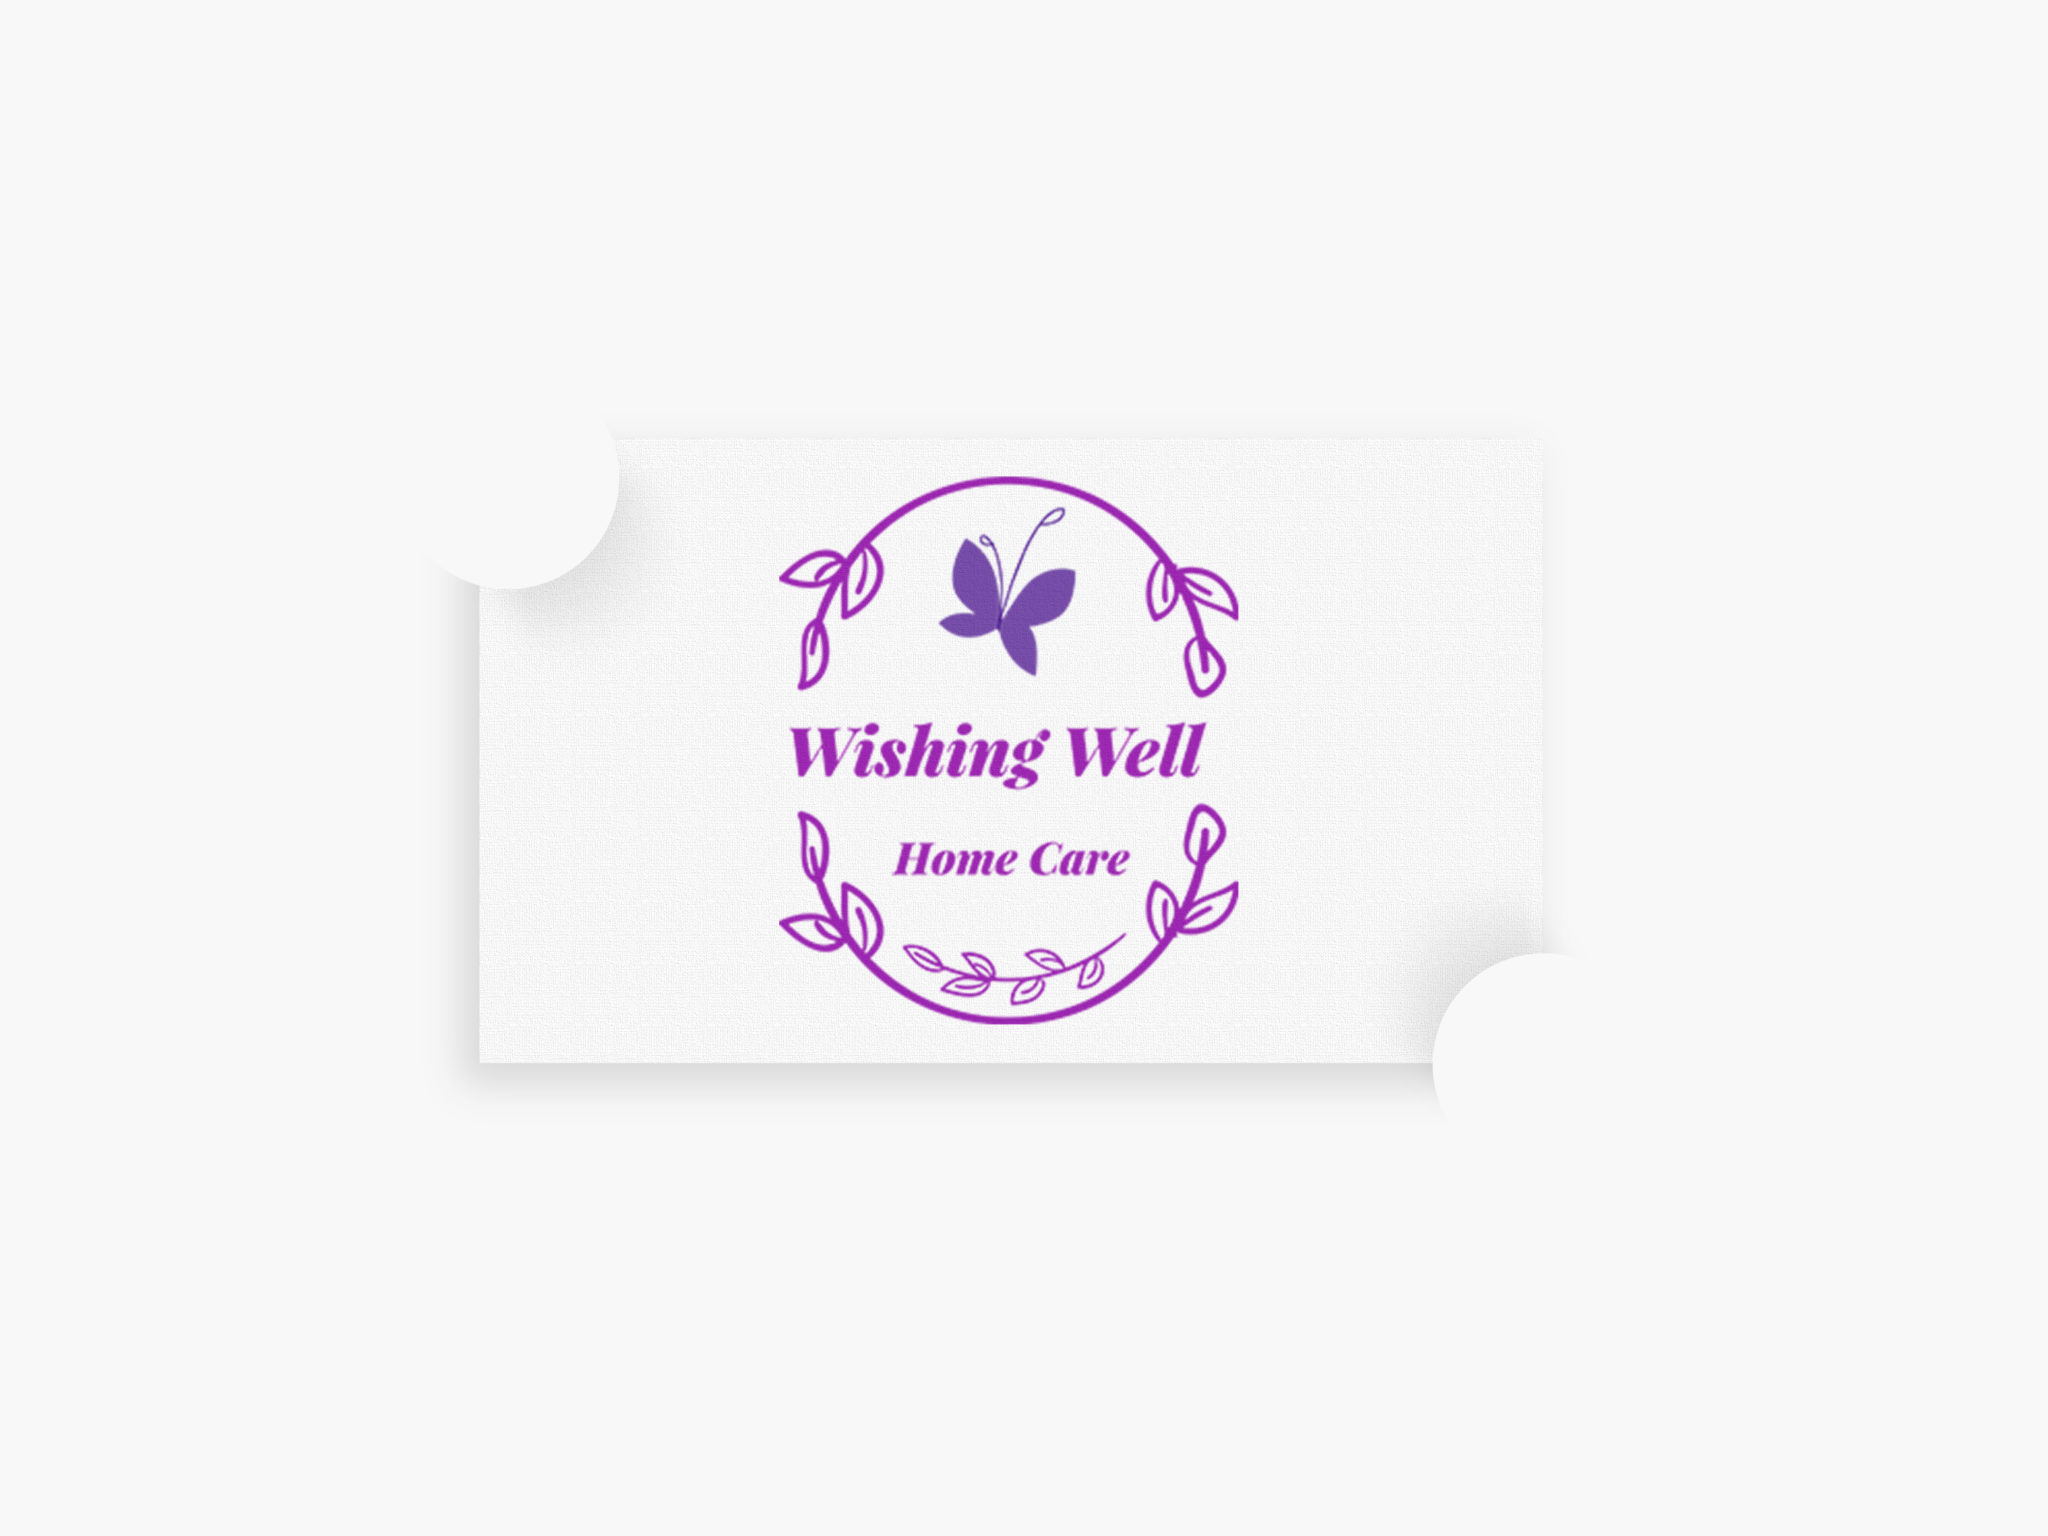 Wishing Well Home Care Logo